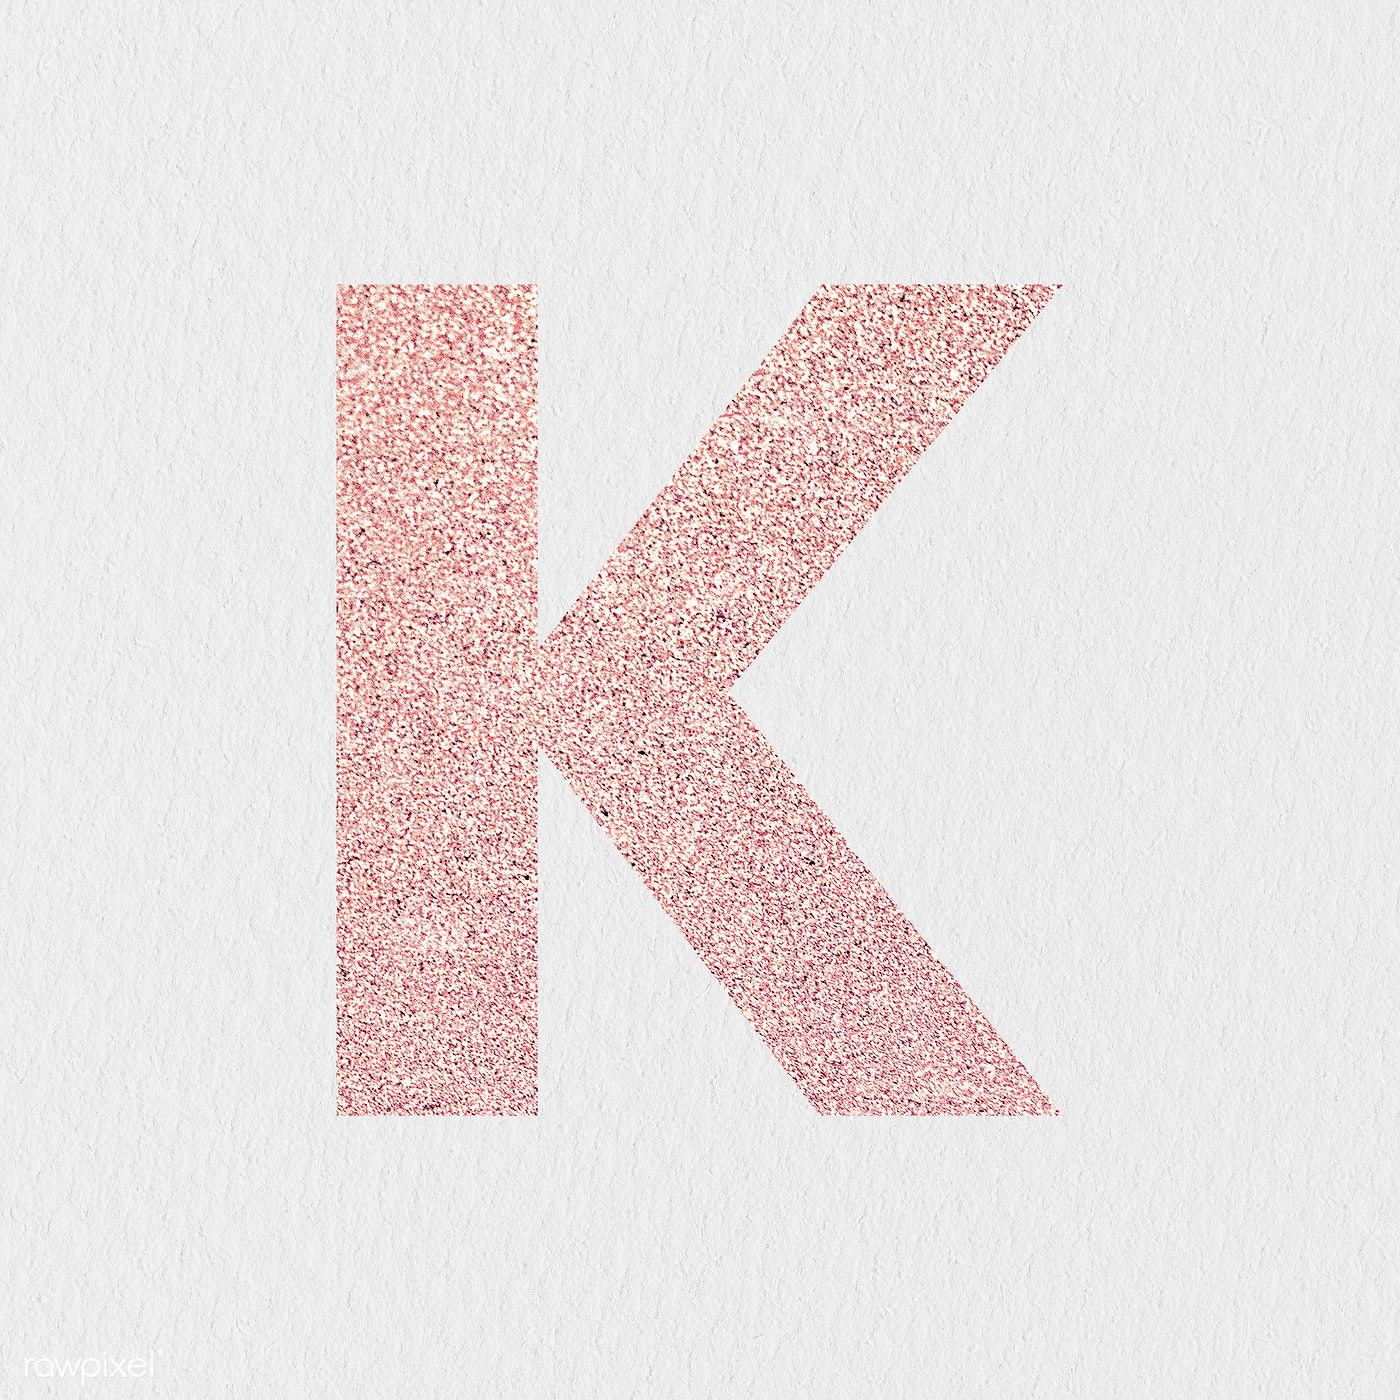 Glitter Capital Letter K Sticker Illustration Free Image By Rawpixel Com Ningzk V K Letter Images Lettering Numbers Typography